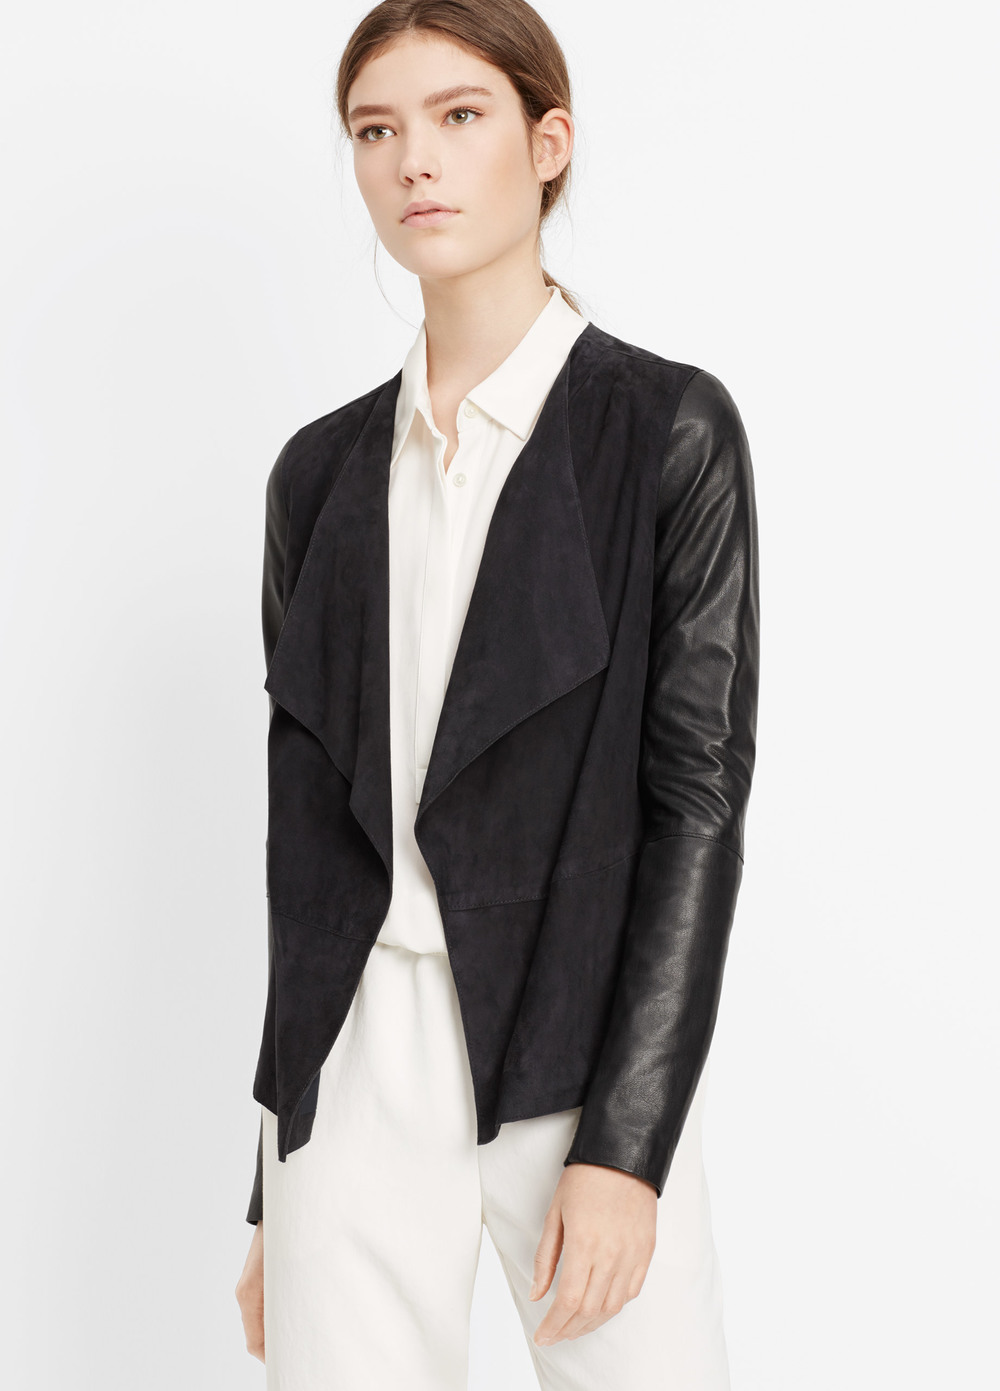 Vince Suede Blocked Drape Front Jacket. Available in black/brown, black/black. Vince. $995.